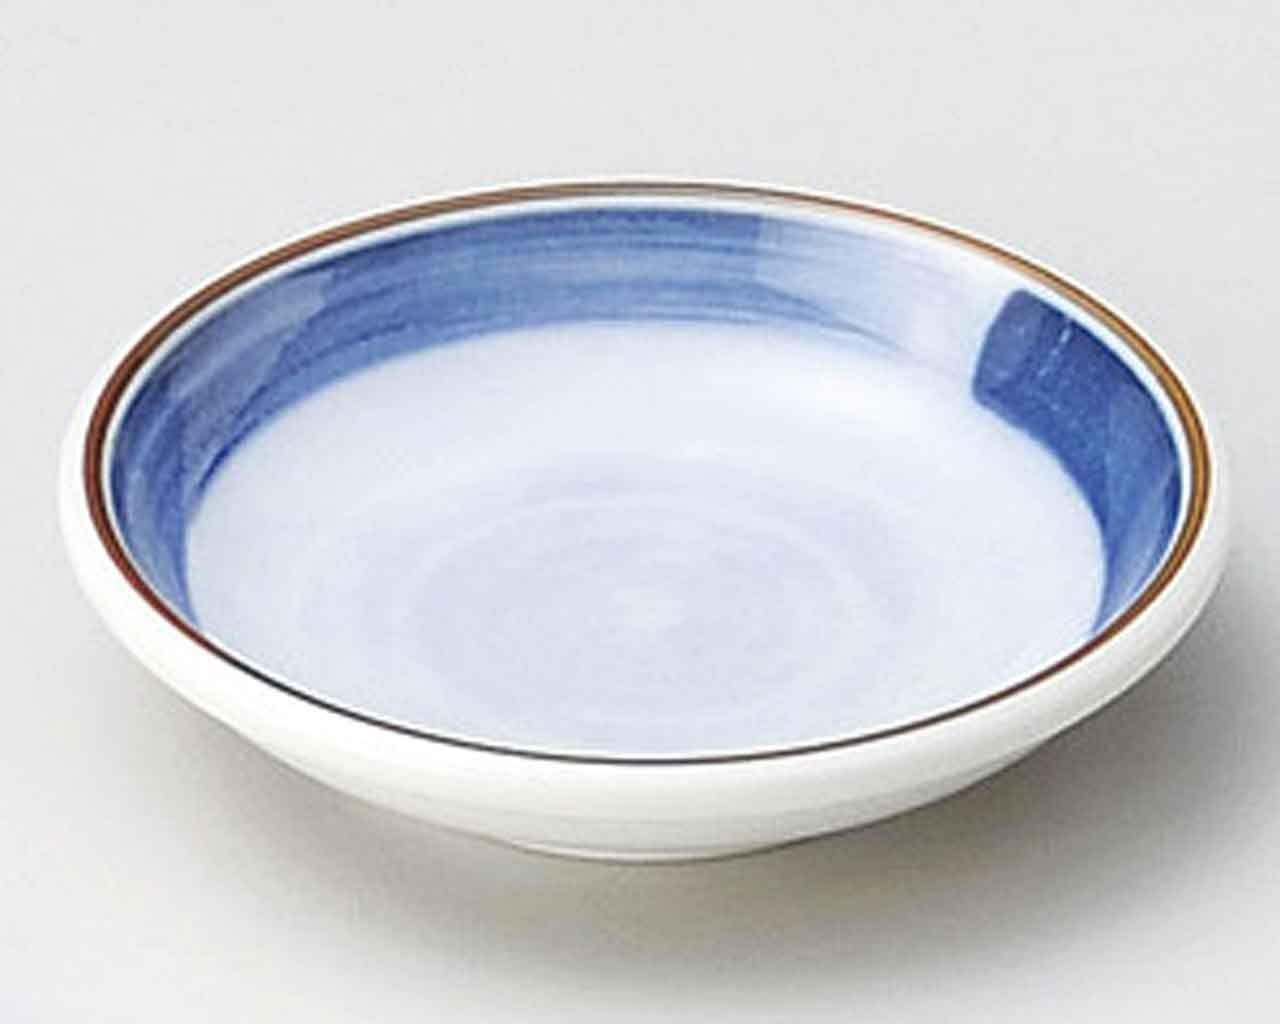 Fuchiobi 3.7inch Set of 5 Small Plates Blue porcelain Made in Japan